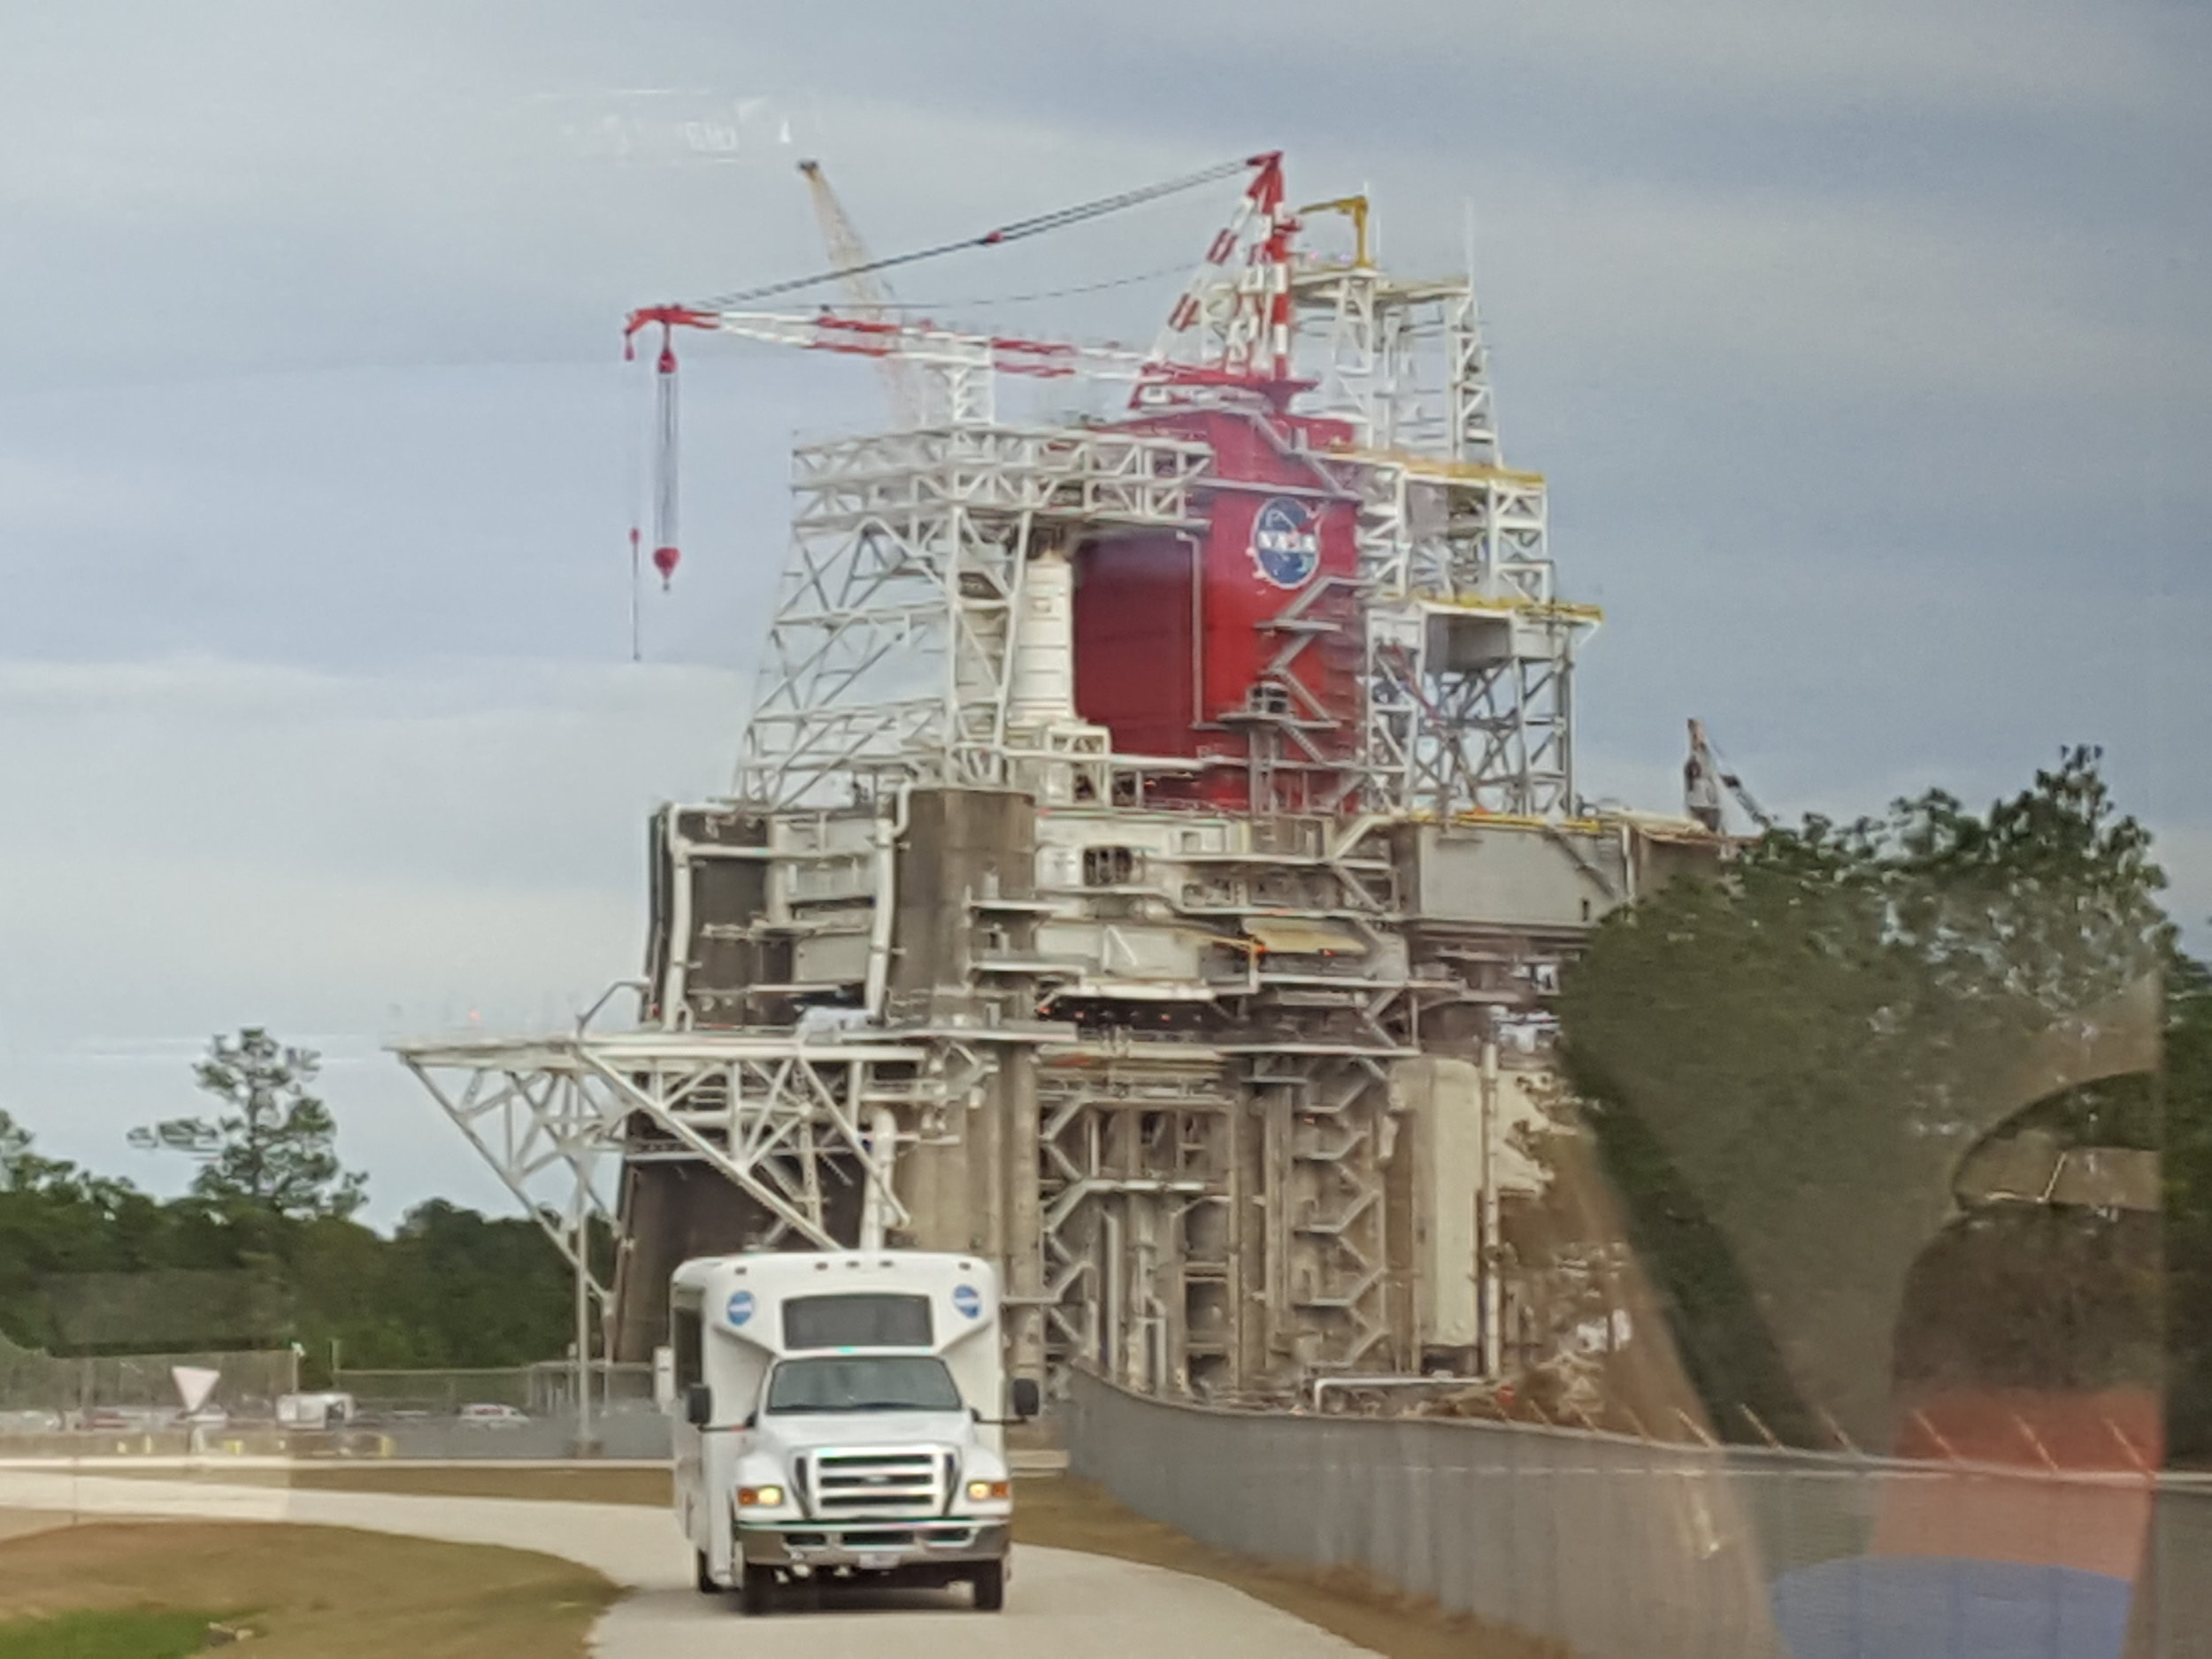 Blurry photo of a main test stand on John C. Stennis Space Center, apologies, it was taken from a moving tour bus through a dirty window.